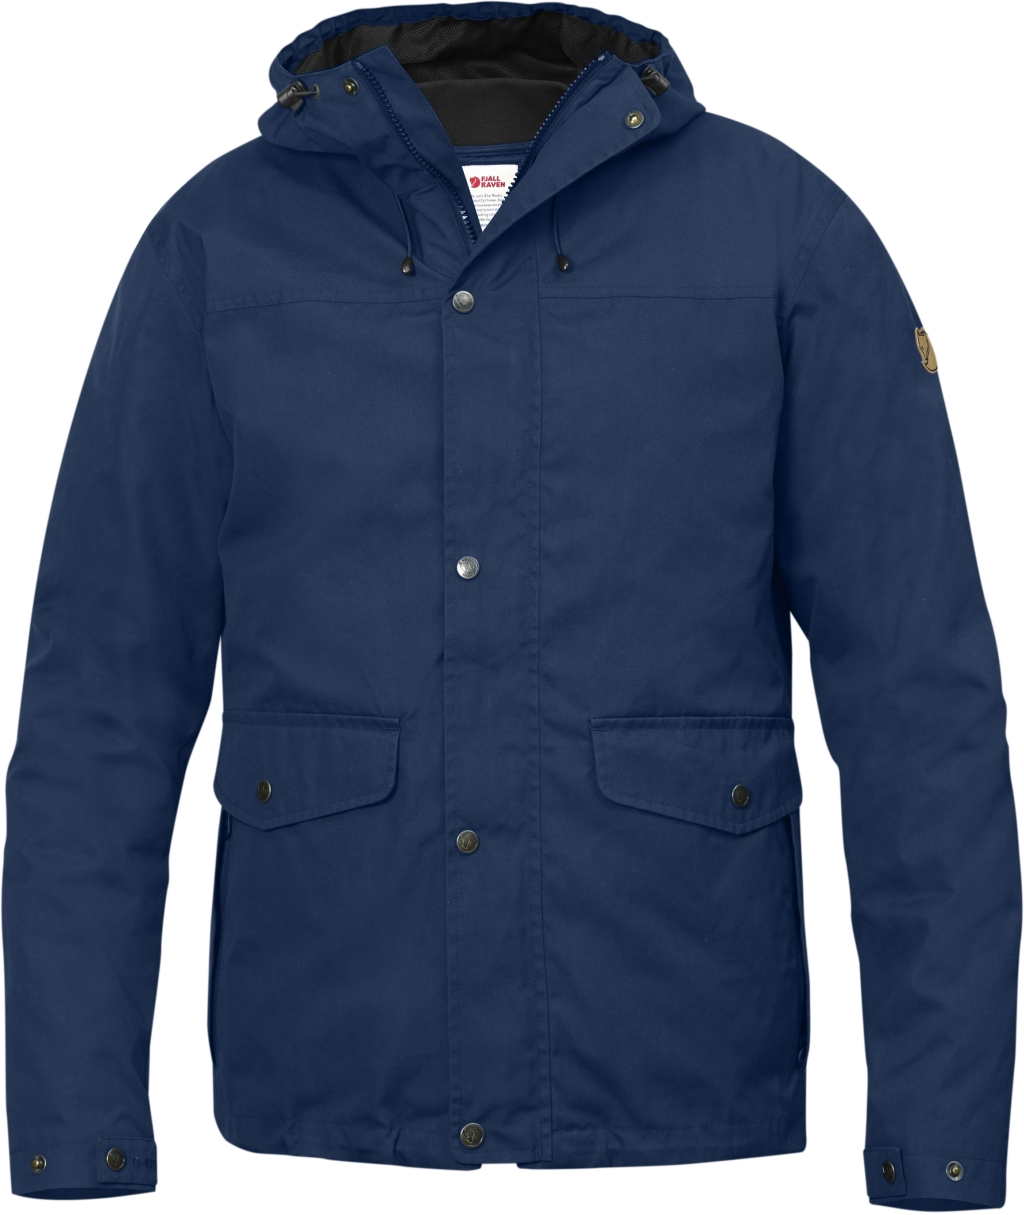 FjallRaven Ovik 3 in 1 Jacket Blueberry-30